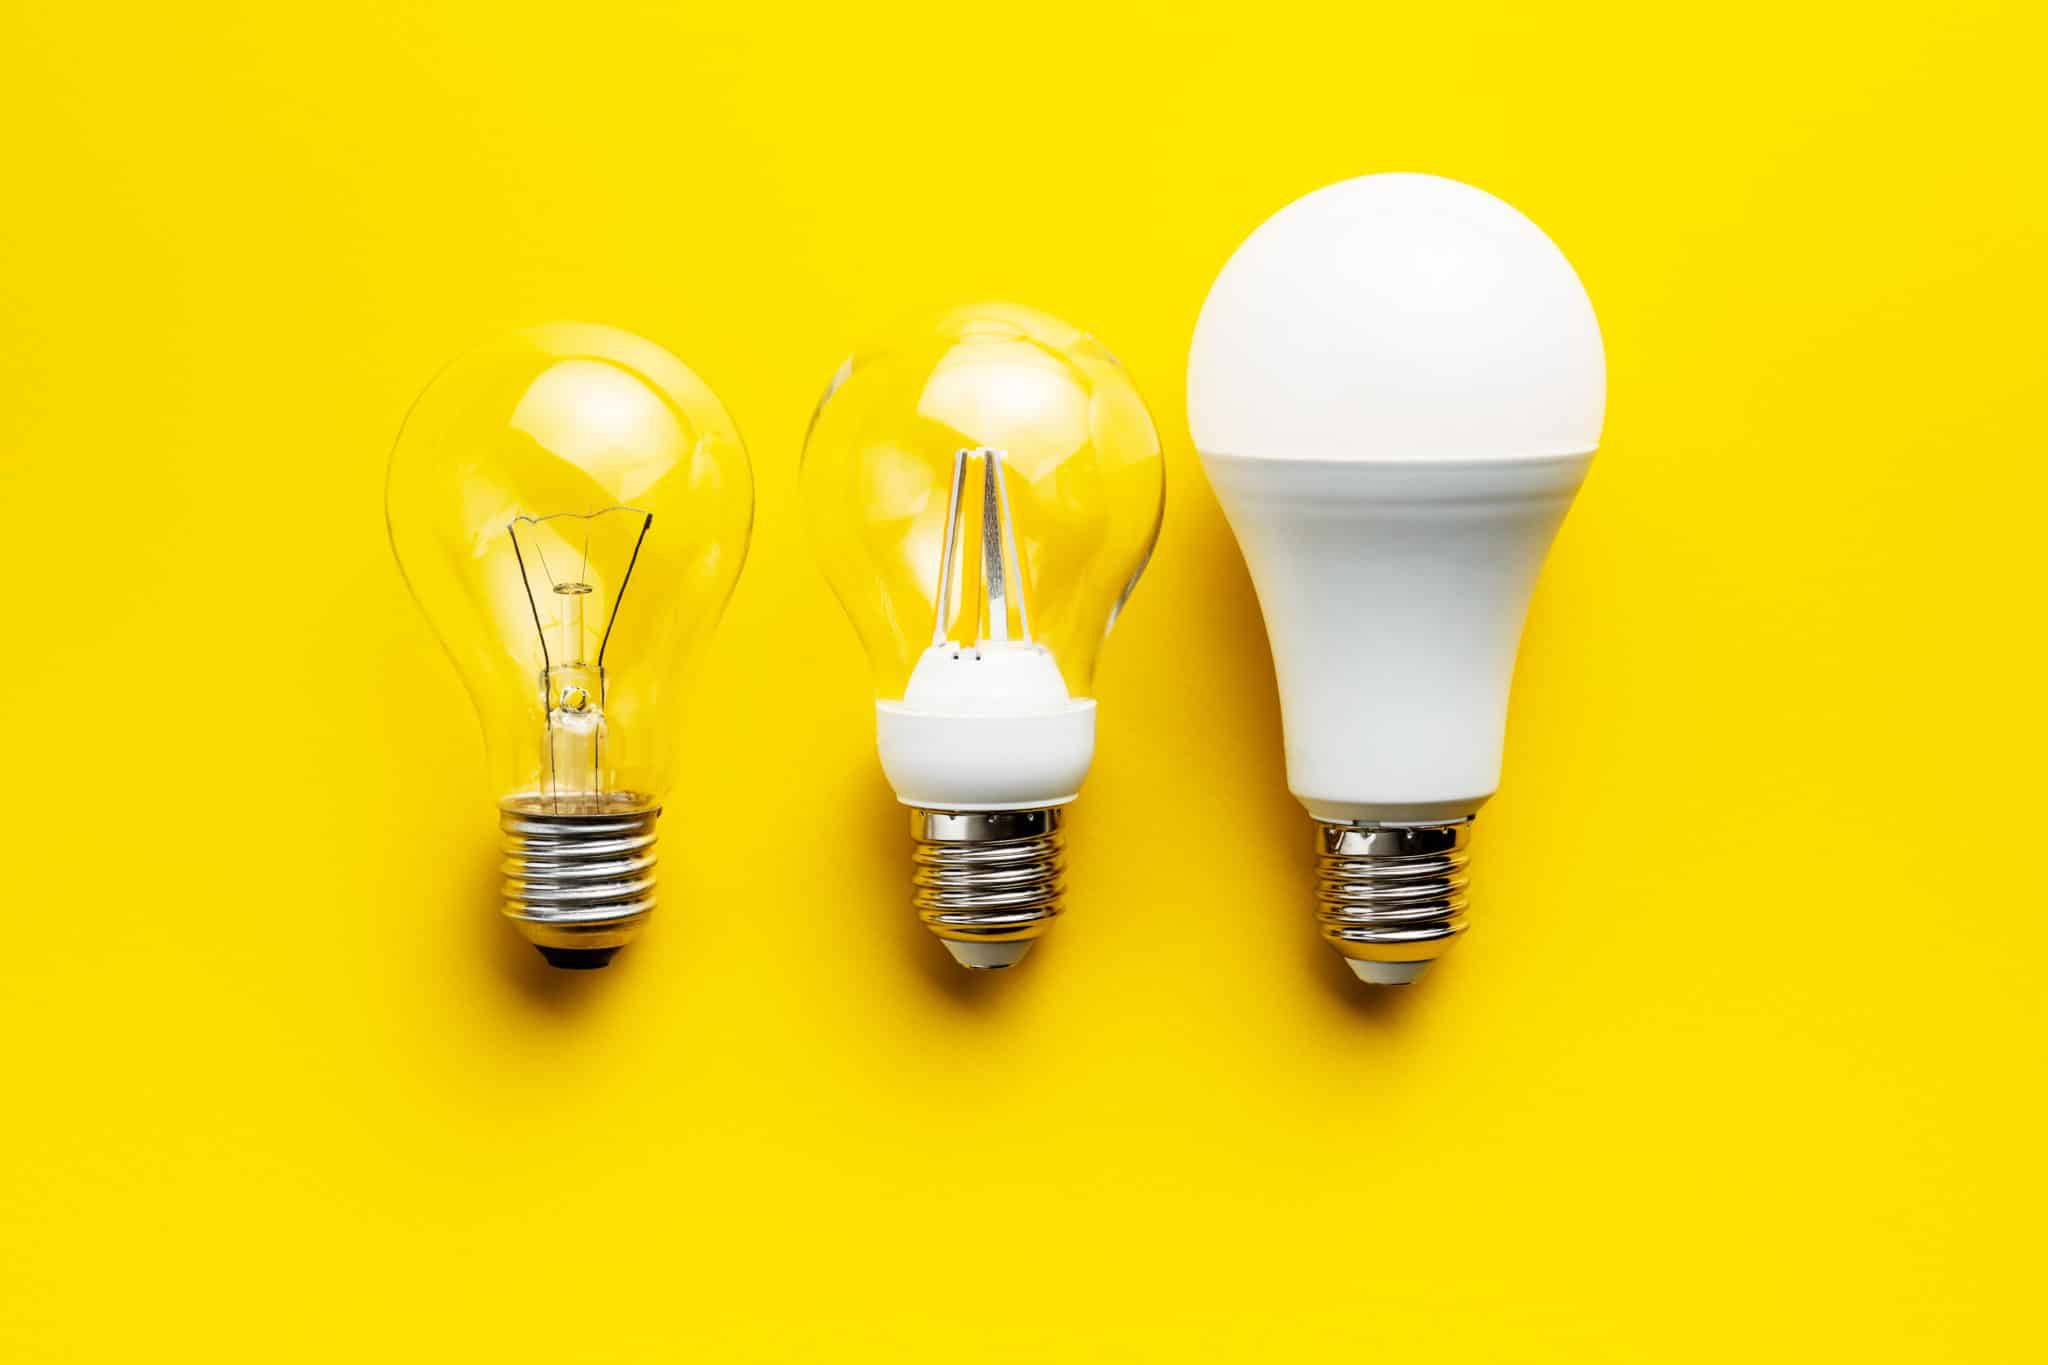 image of lightbulbs on a yellow background.